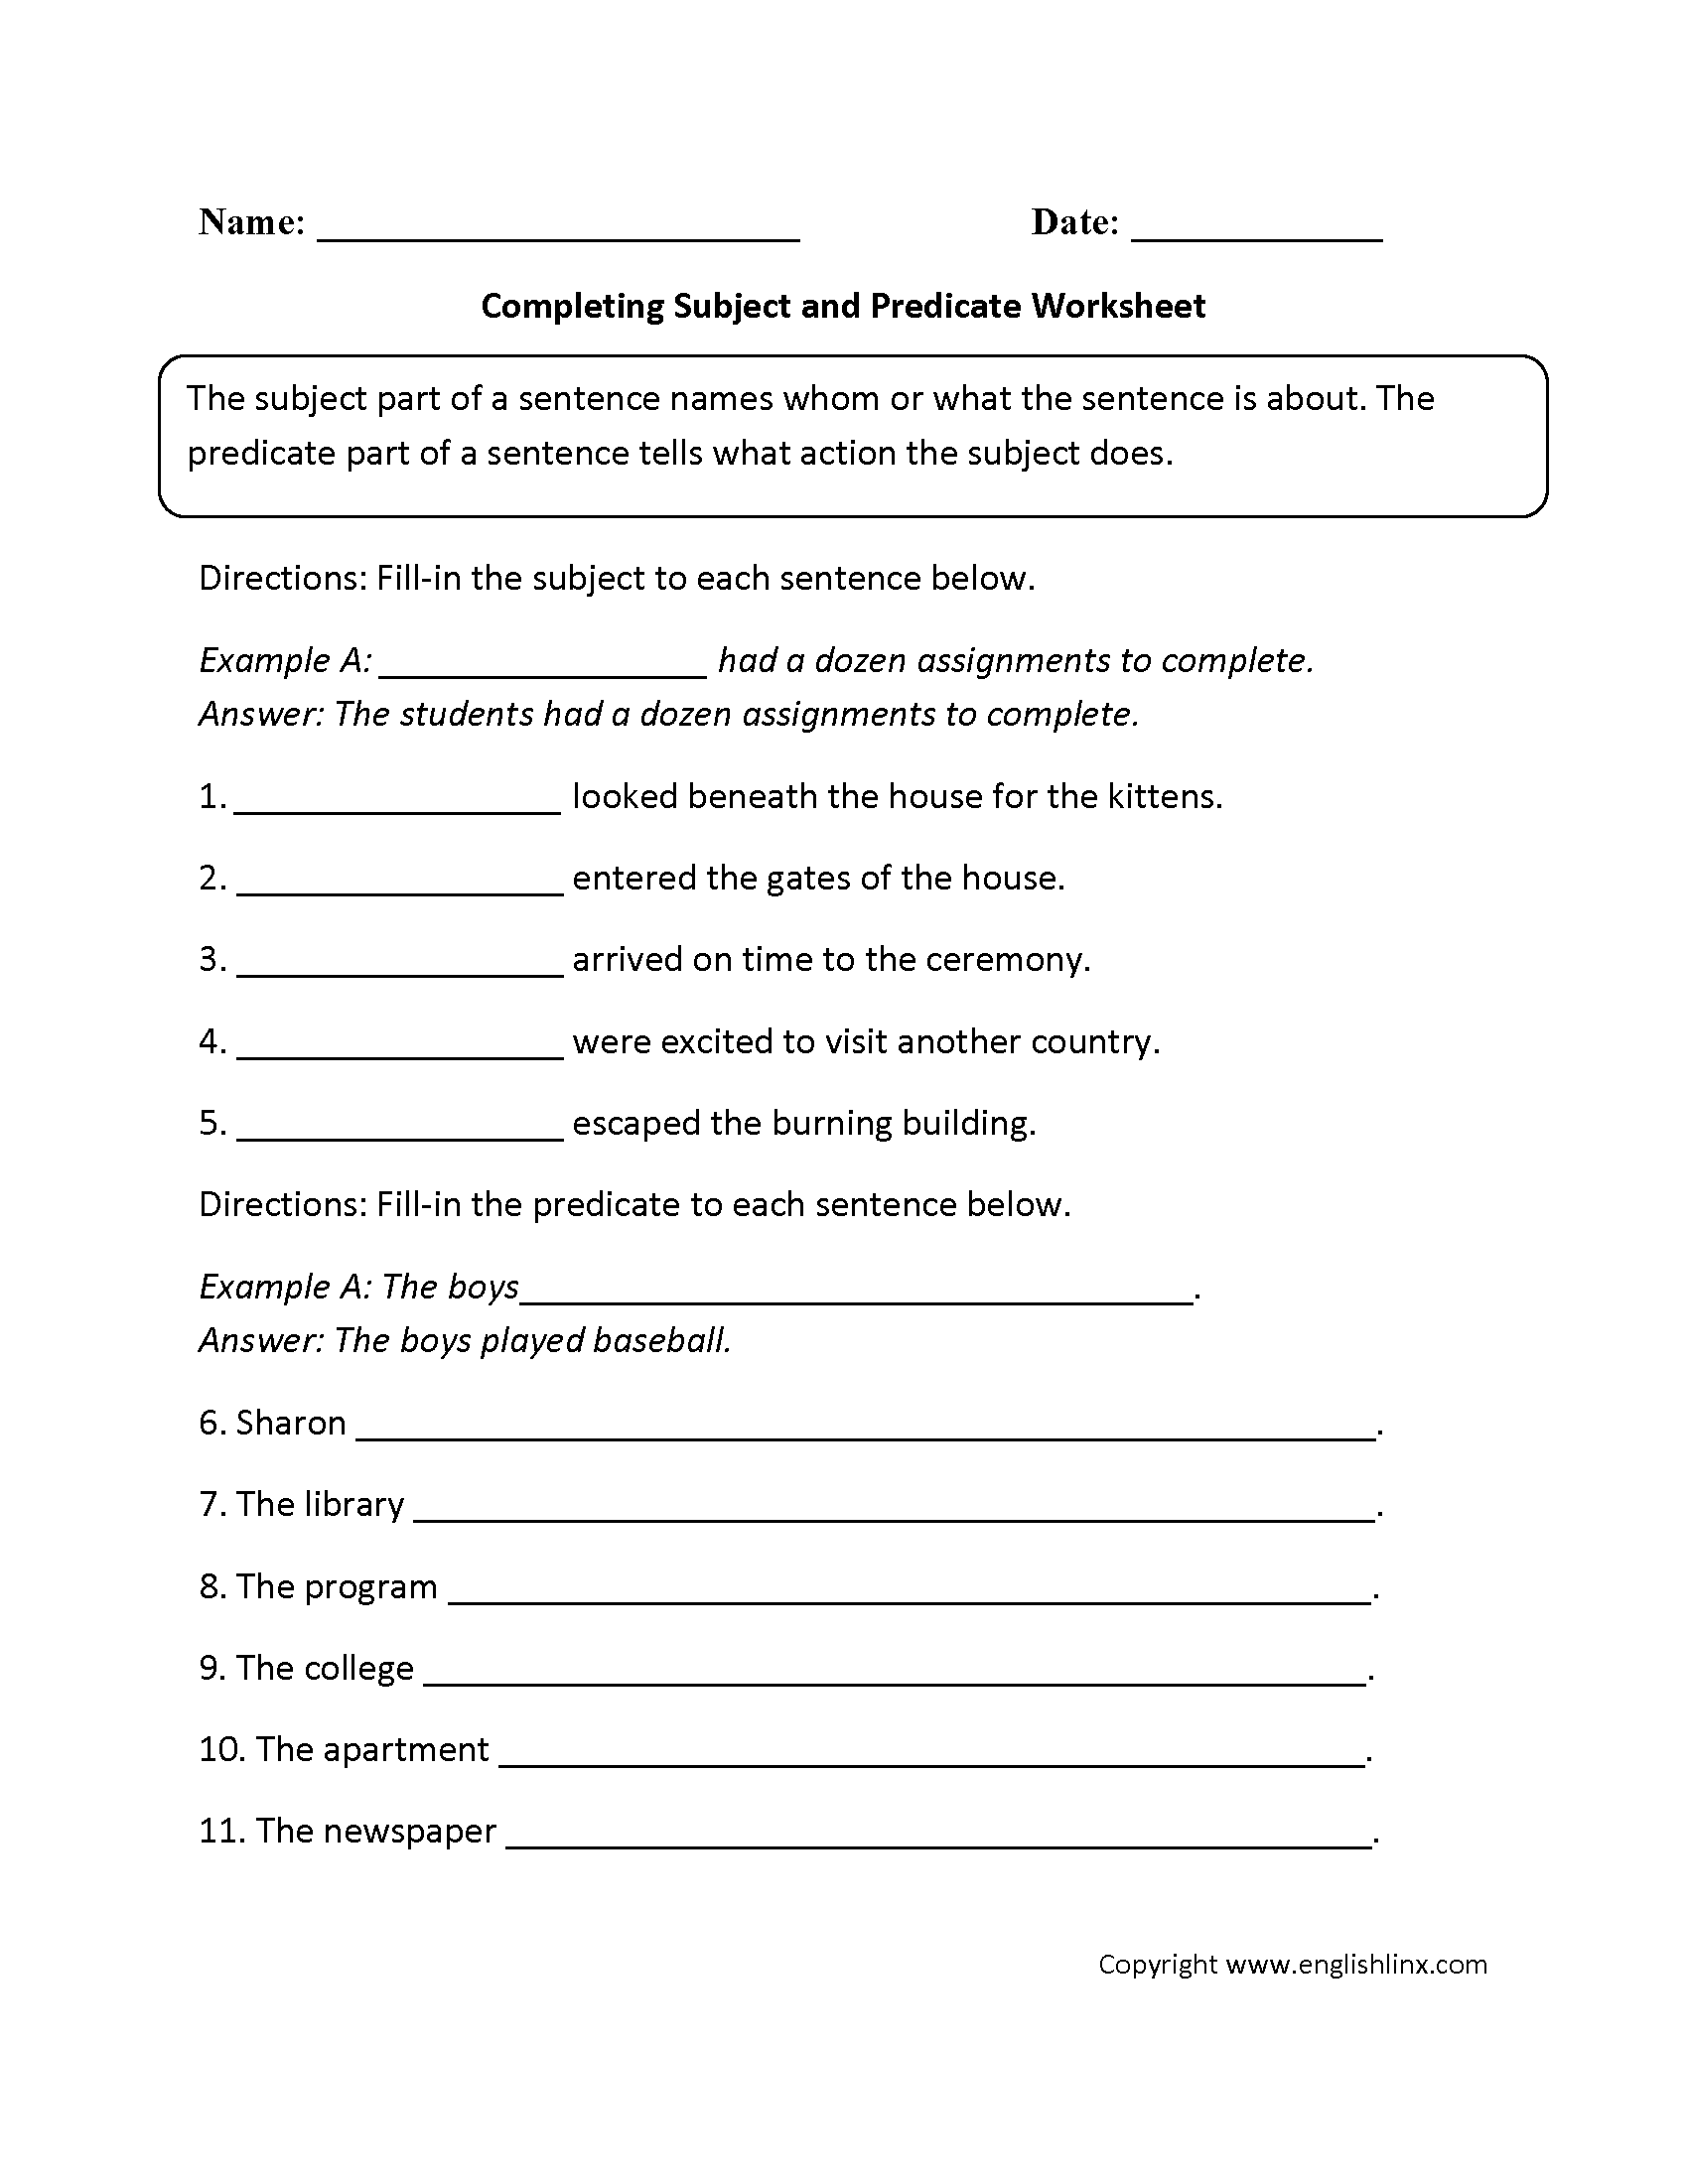 Worksheets Simple Subject Worksheets parts of a sentence worksheets subject and predicate completing the worksheet